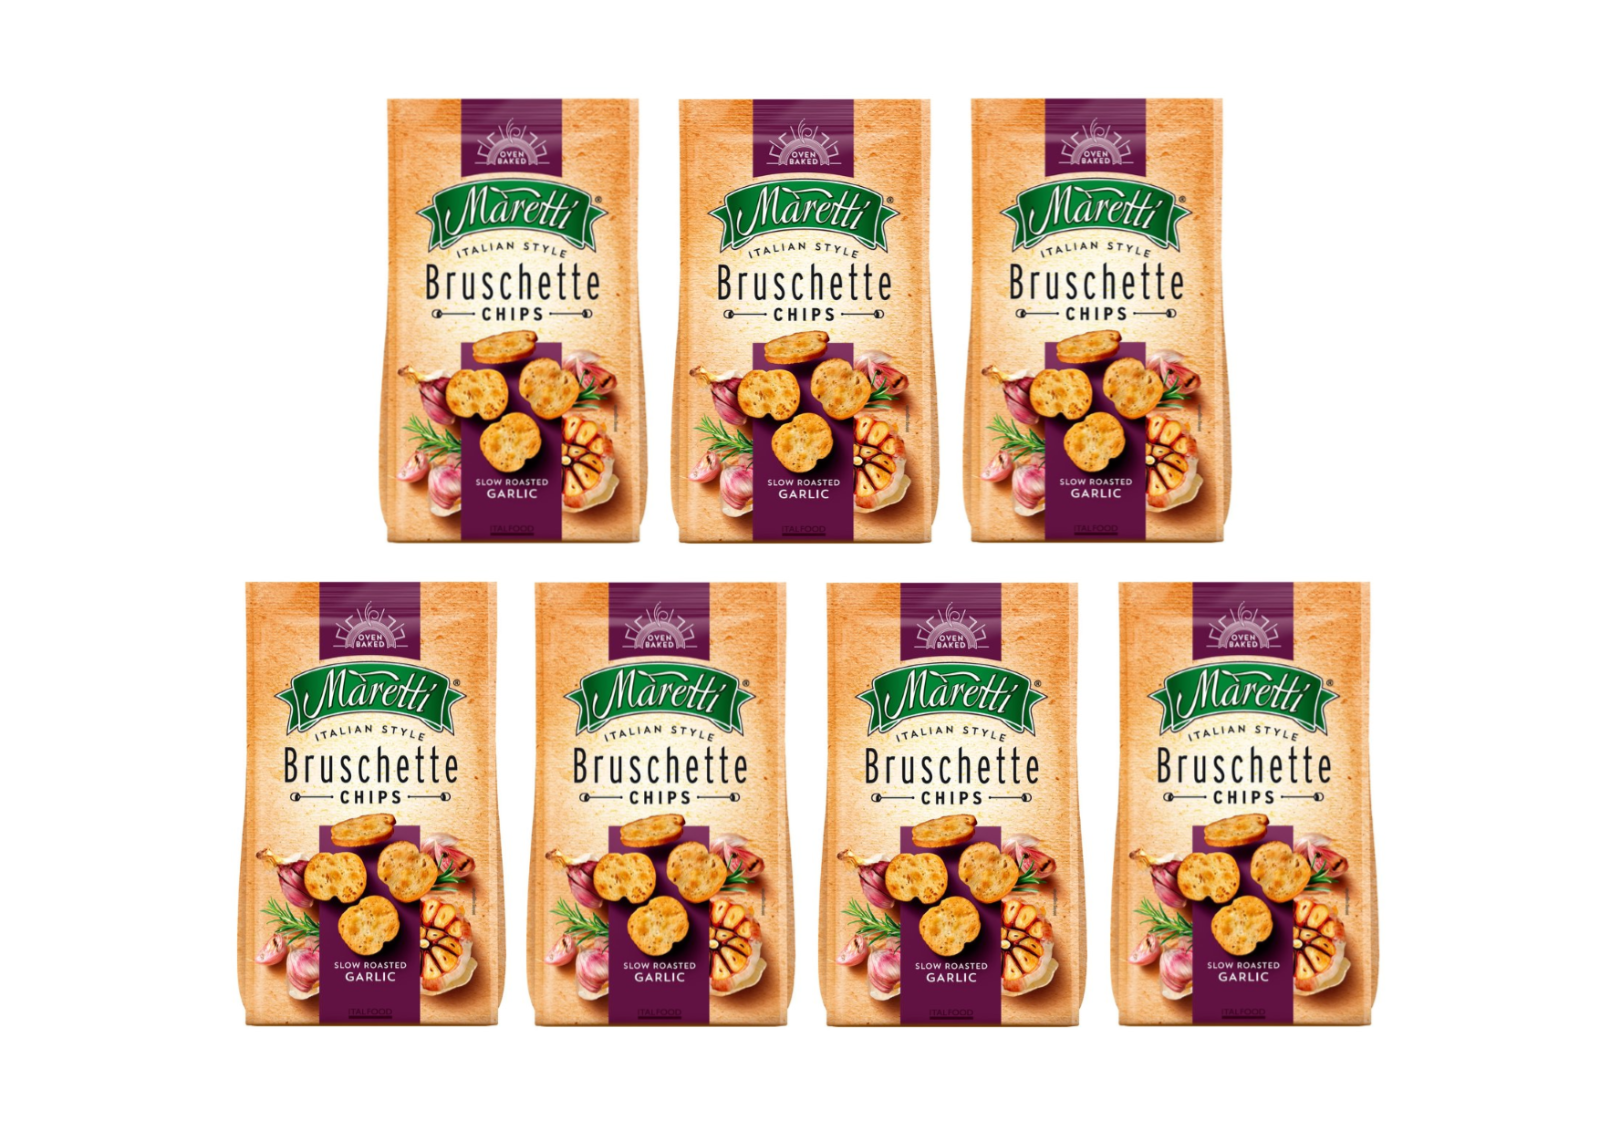 Maretti Bruschette Garlic flavour 70g pack of 7